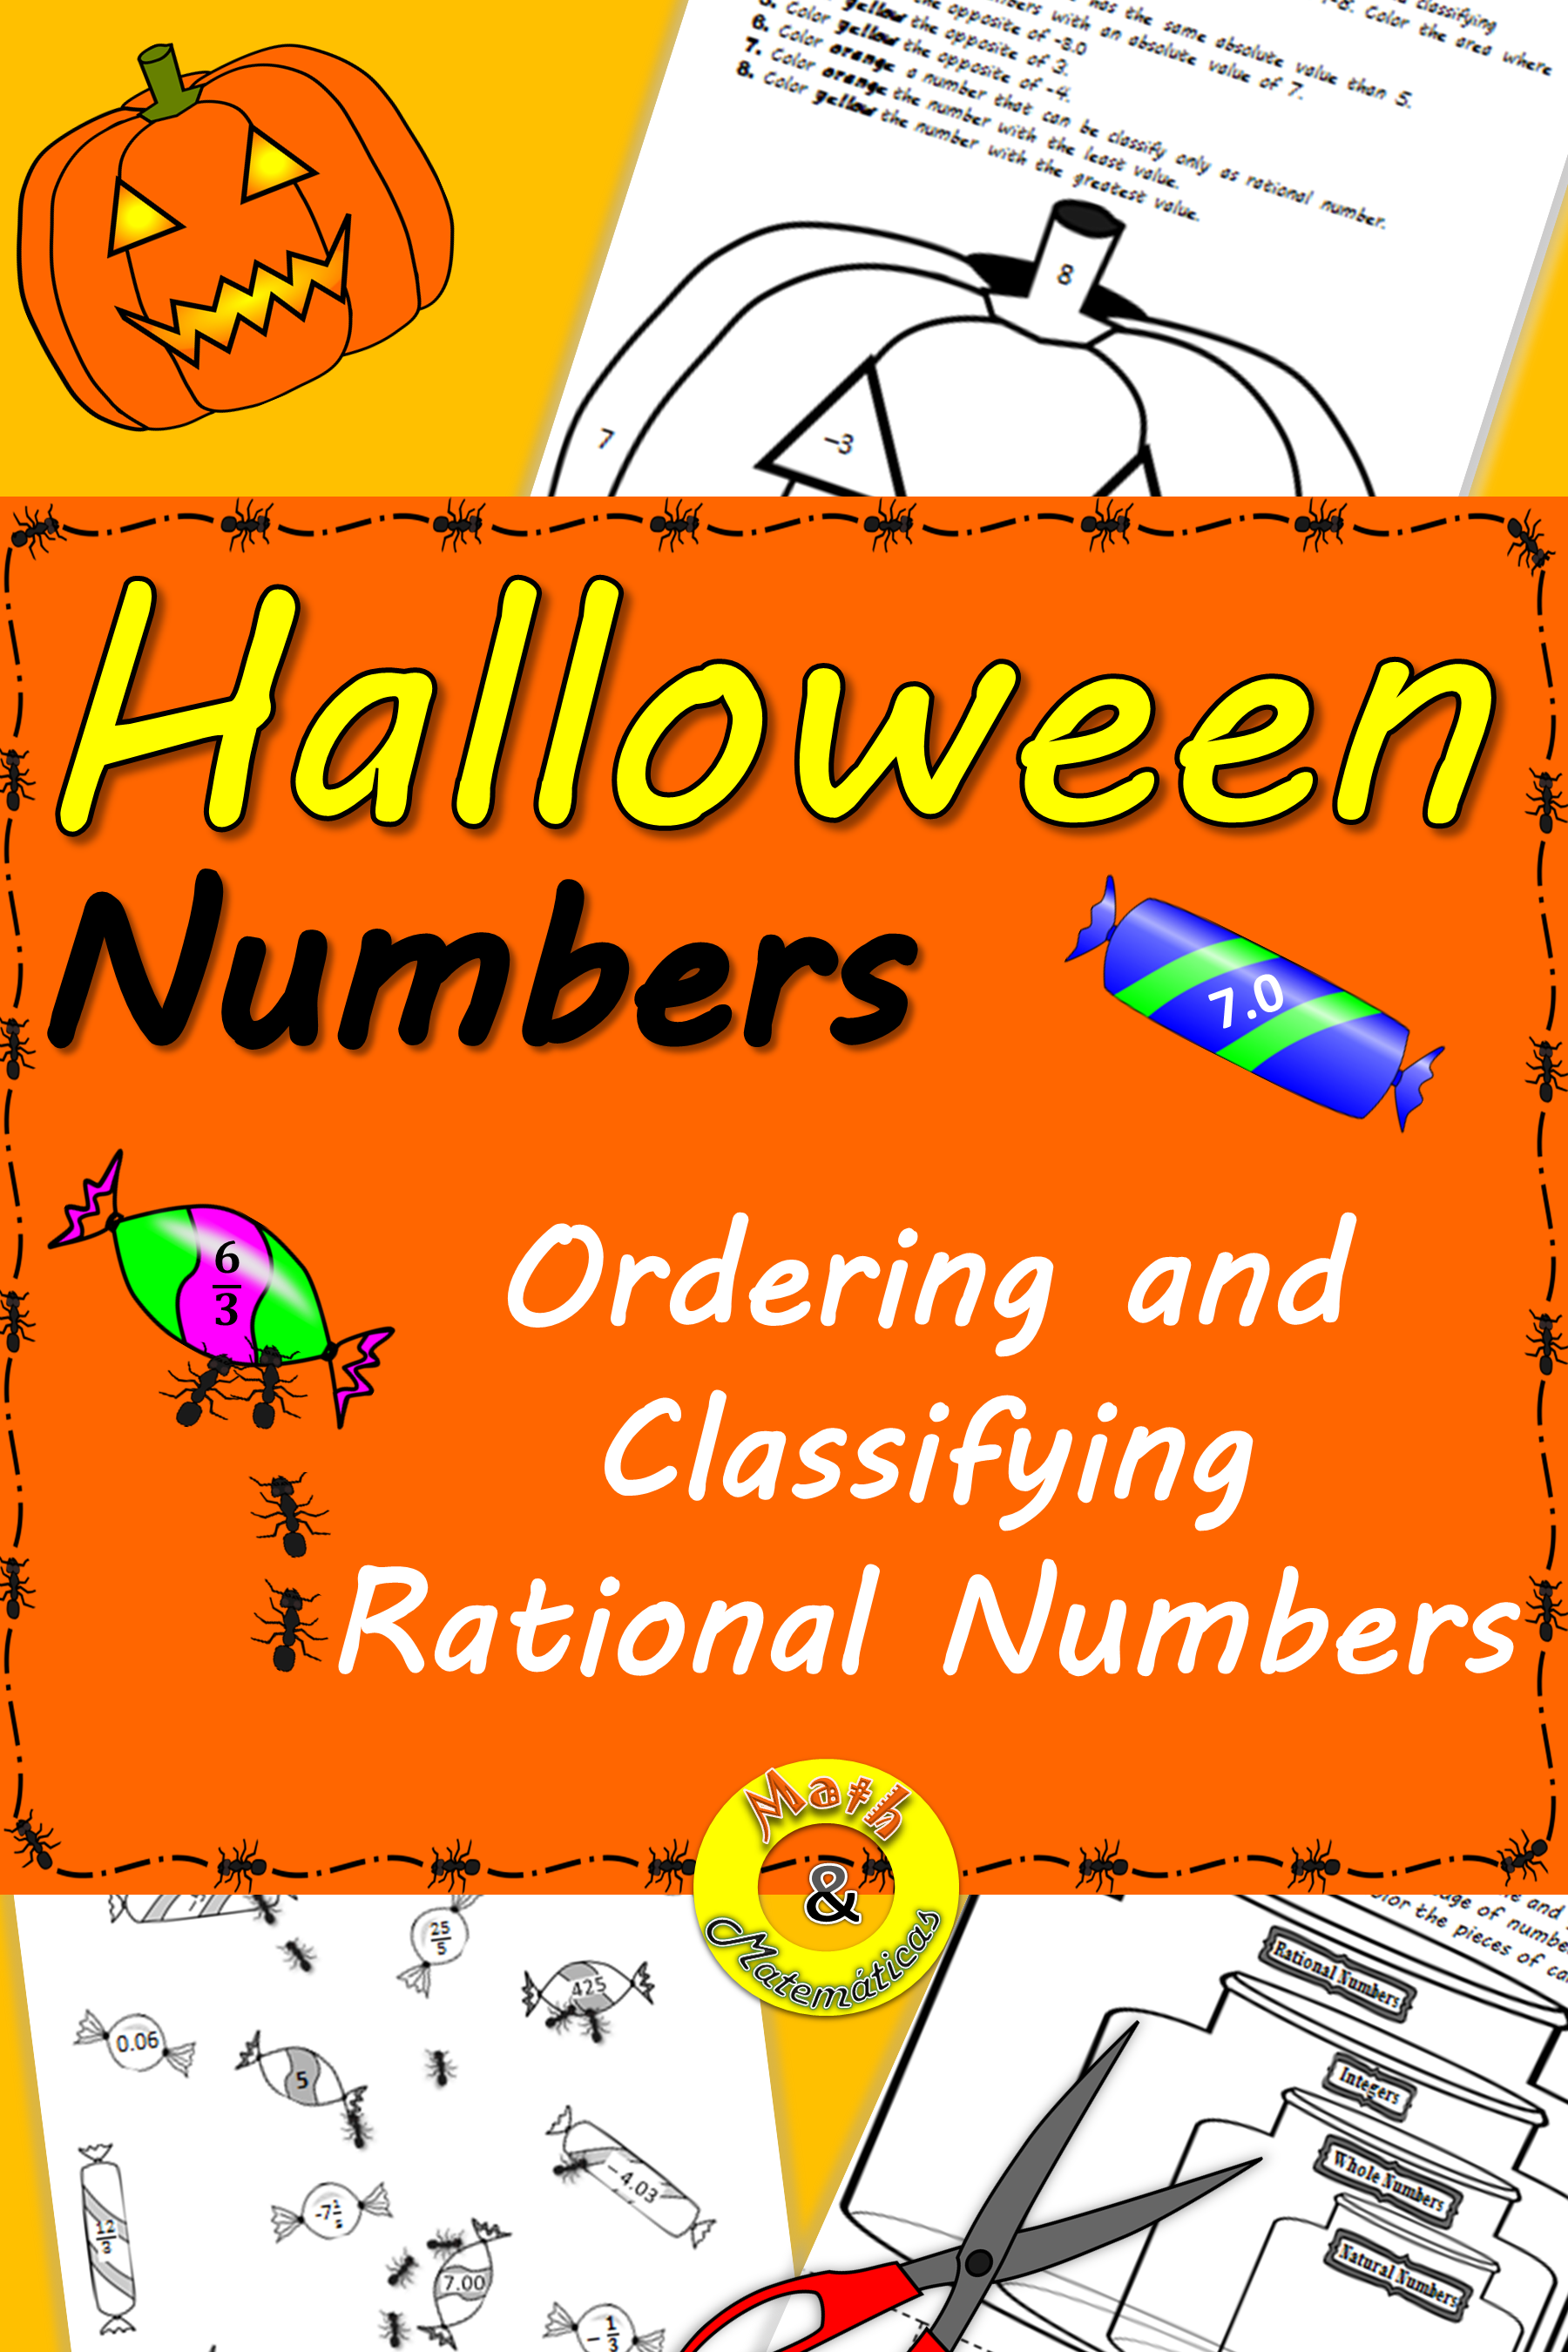 Halloween Number ReviewClassifying rational numbers